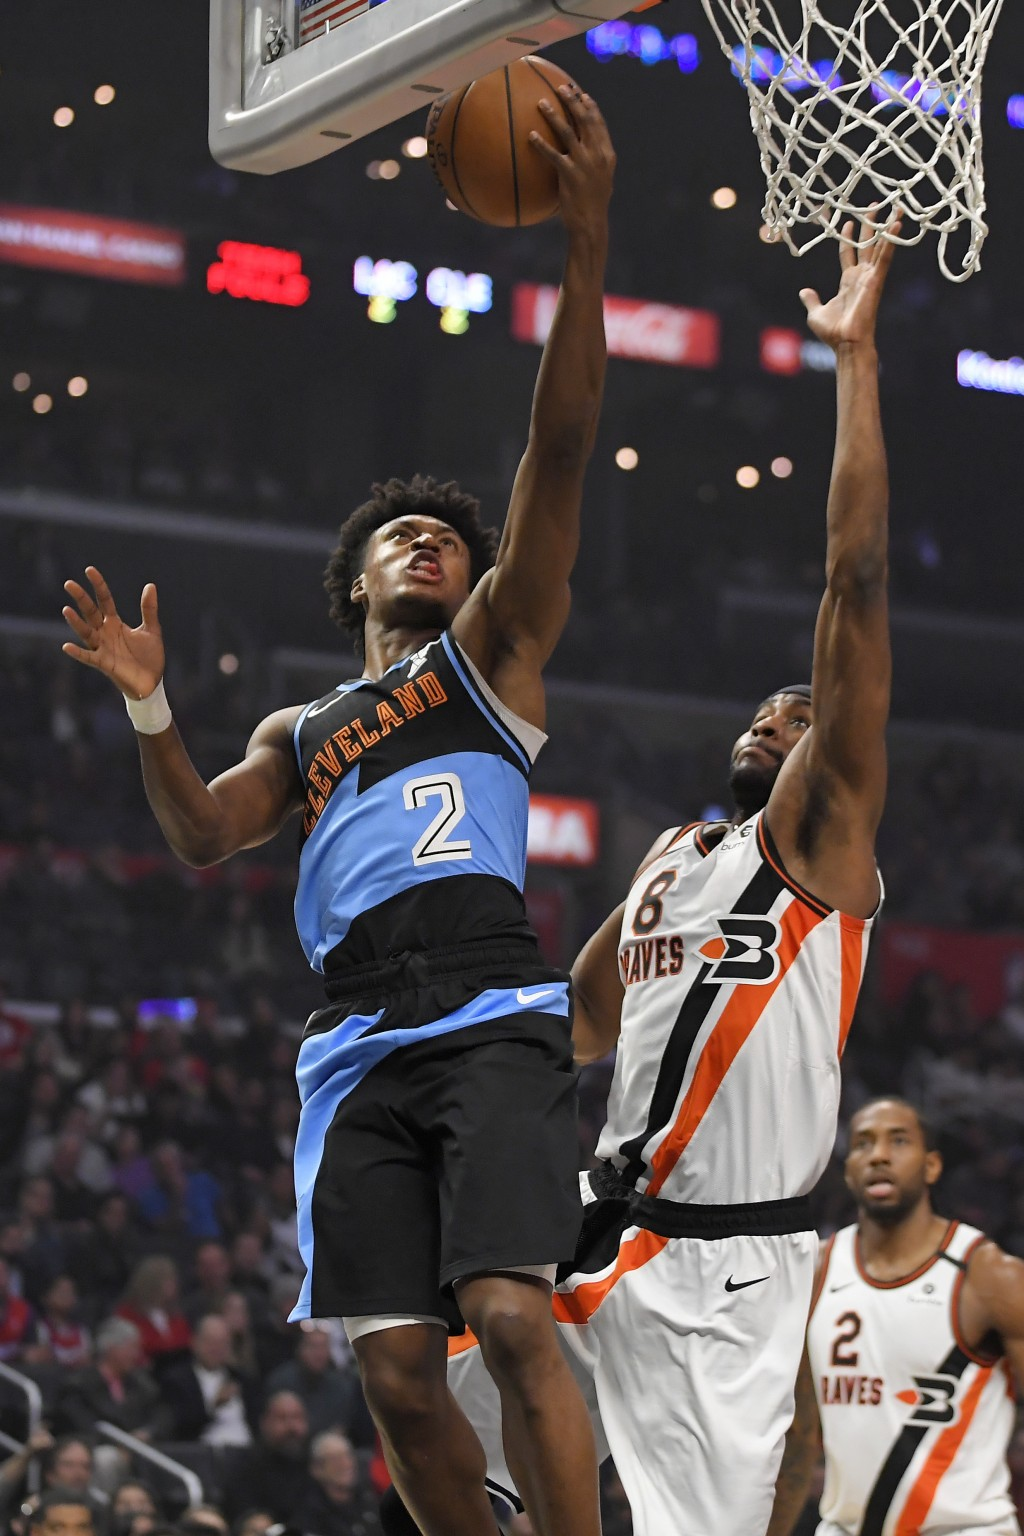 Cleveland Cavaliers guard Collin Sexton, left, shoots as Los Angeles Clippers forward Maurice Harkless, center, defends while forward Kawhi Leonard wa...